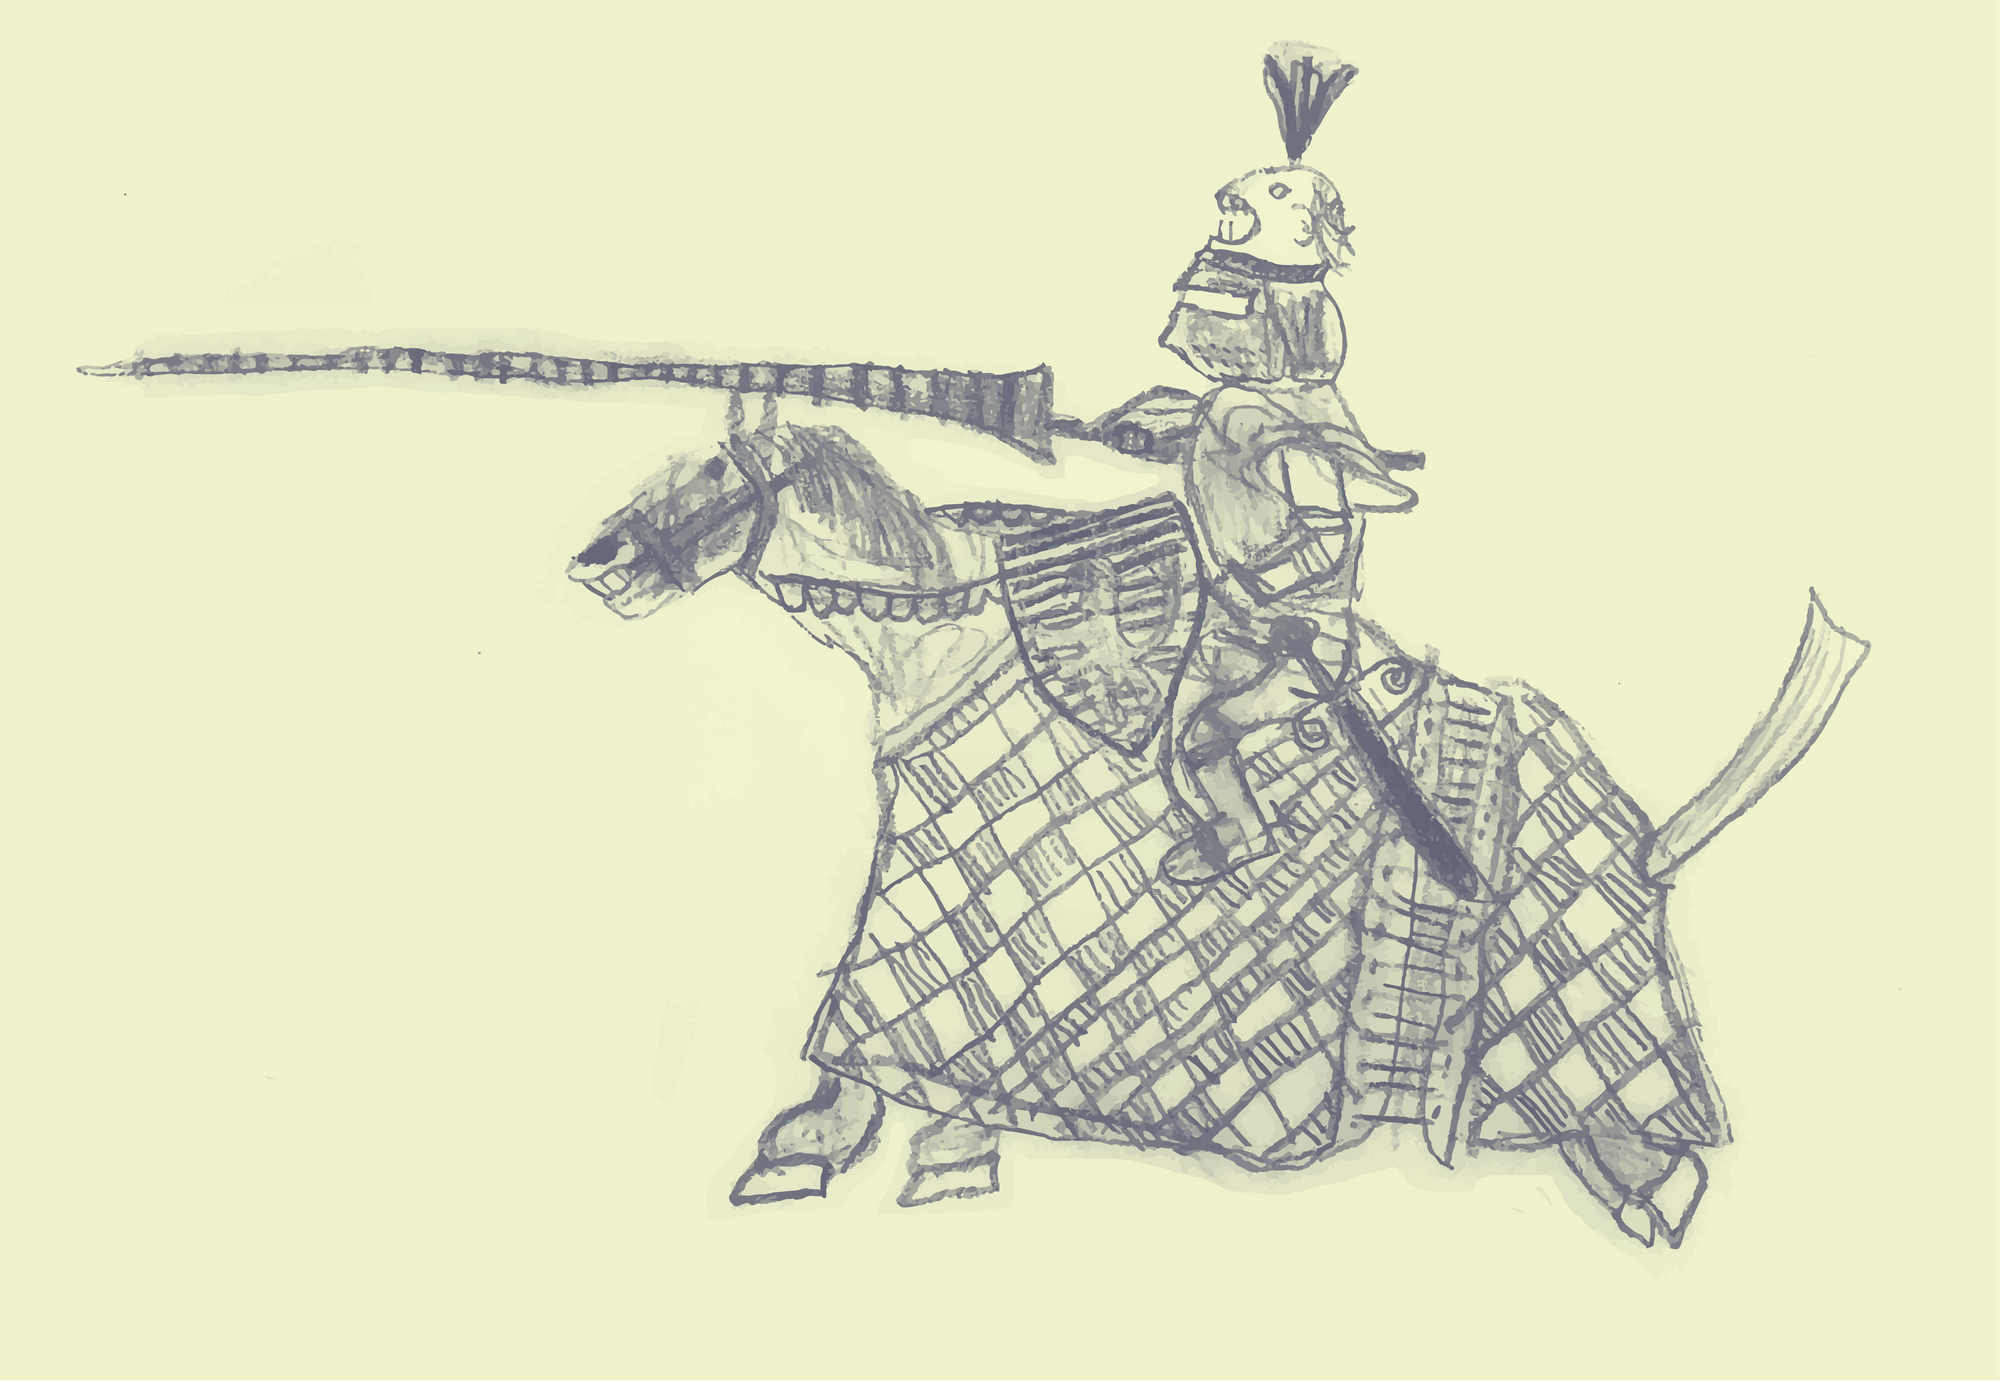 drawing of a jousting knight on horseback